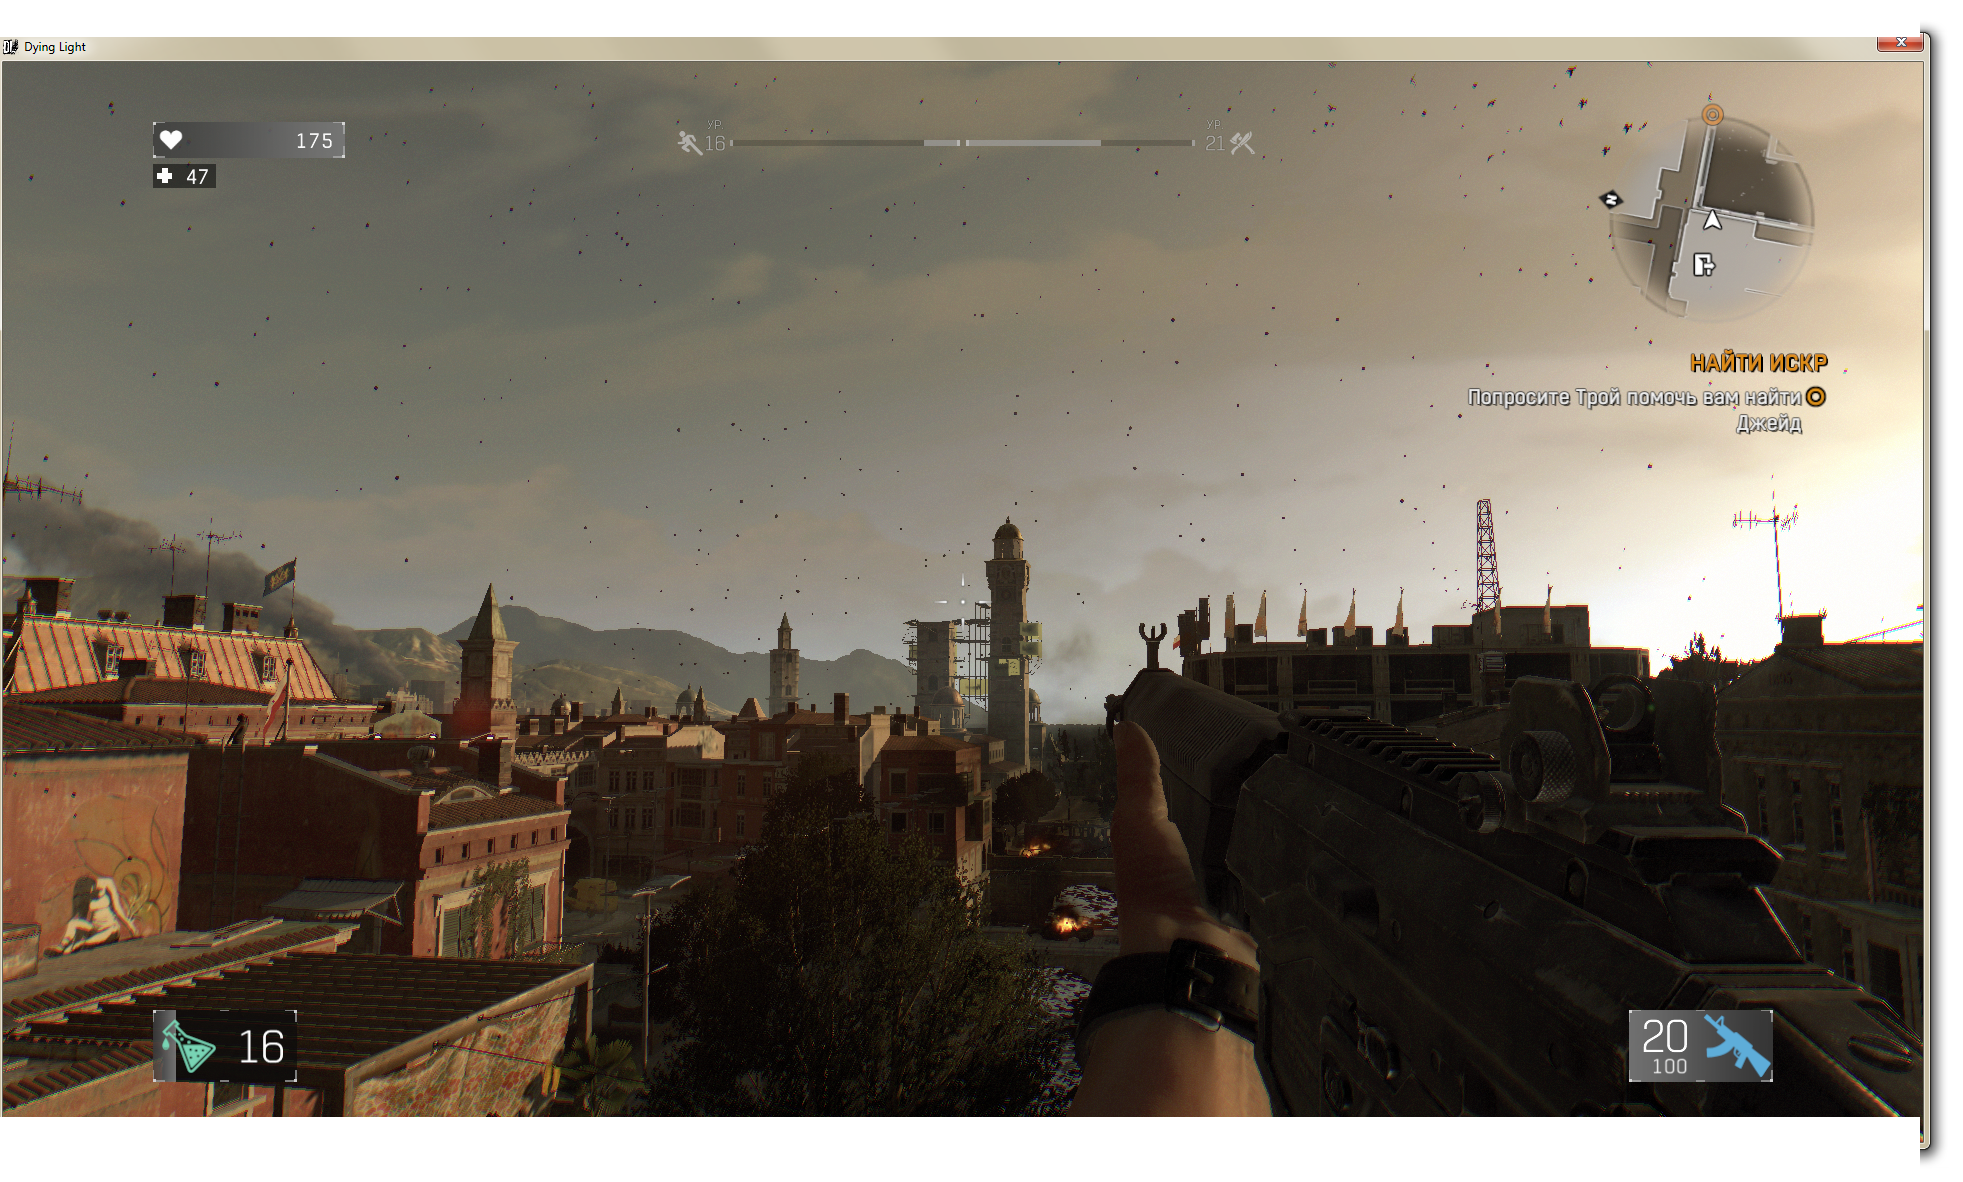 2015-02-04 16-08-40 Dying Light (inactive)